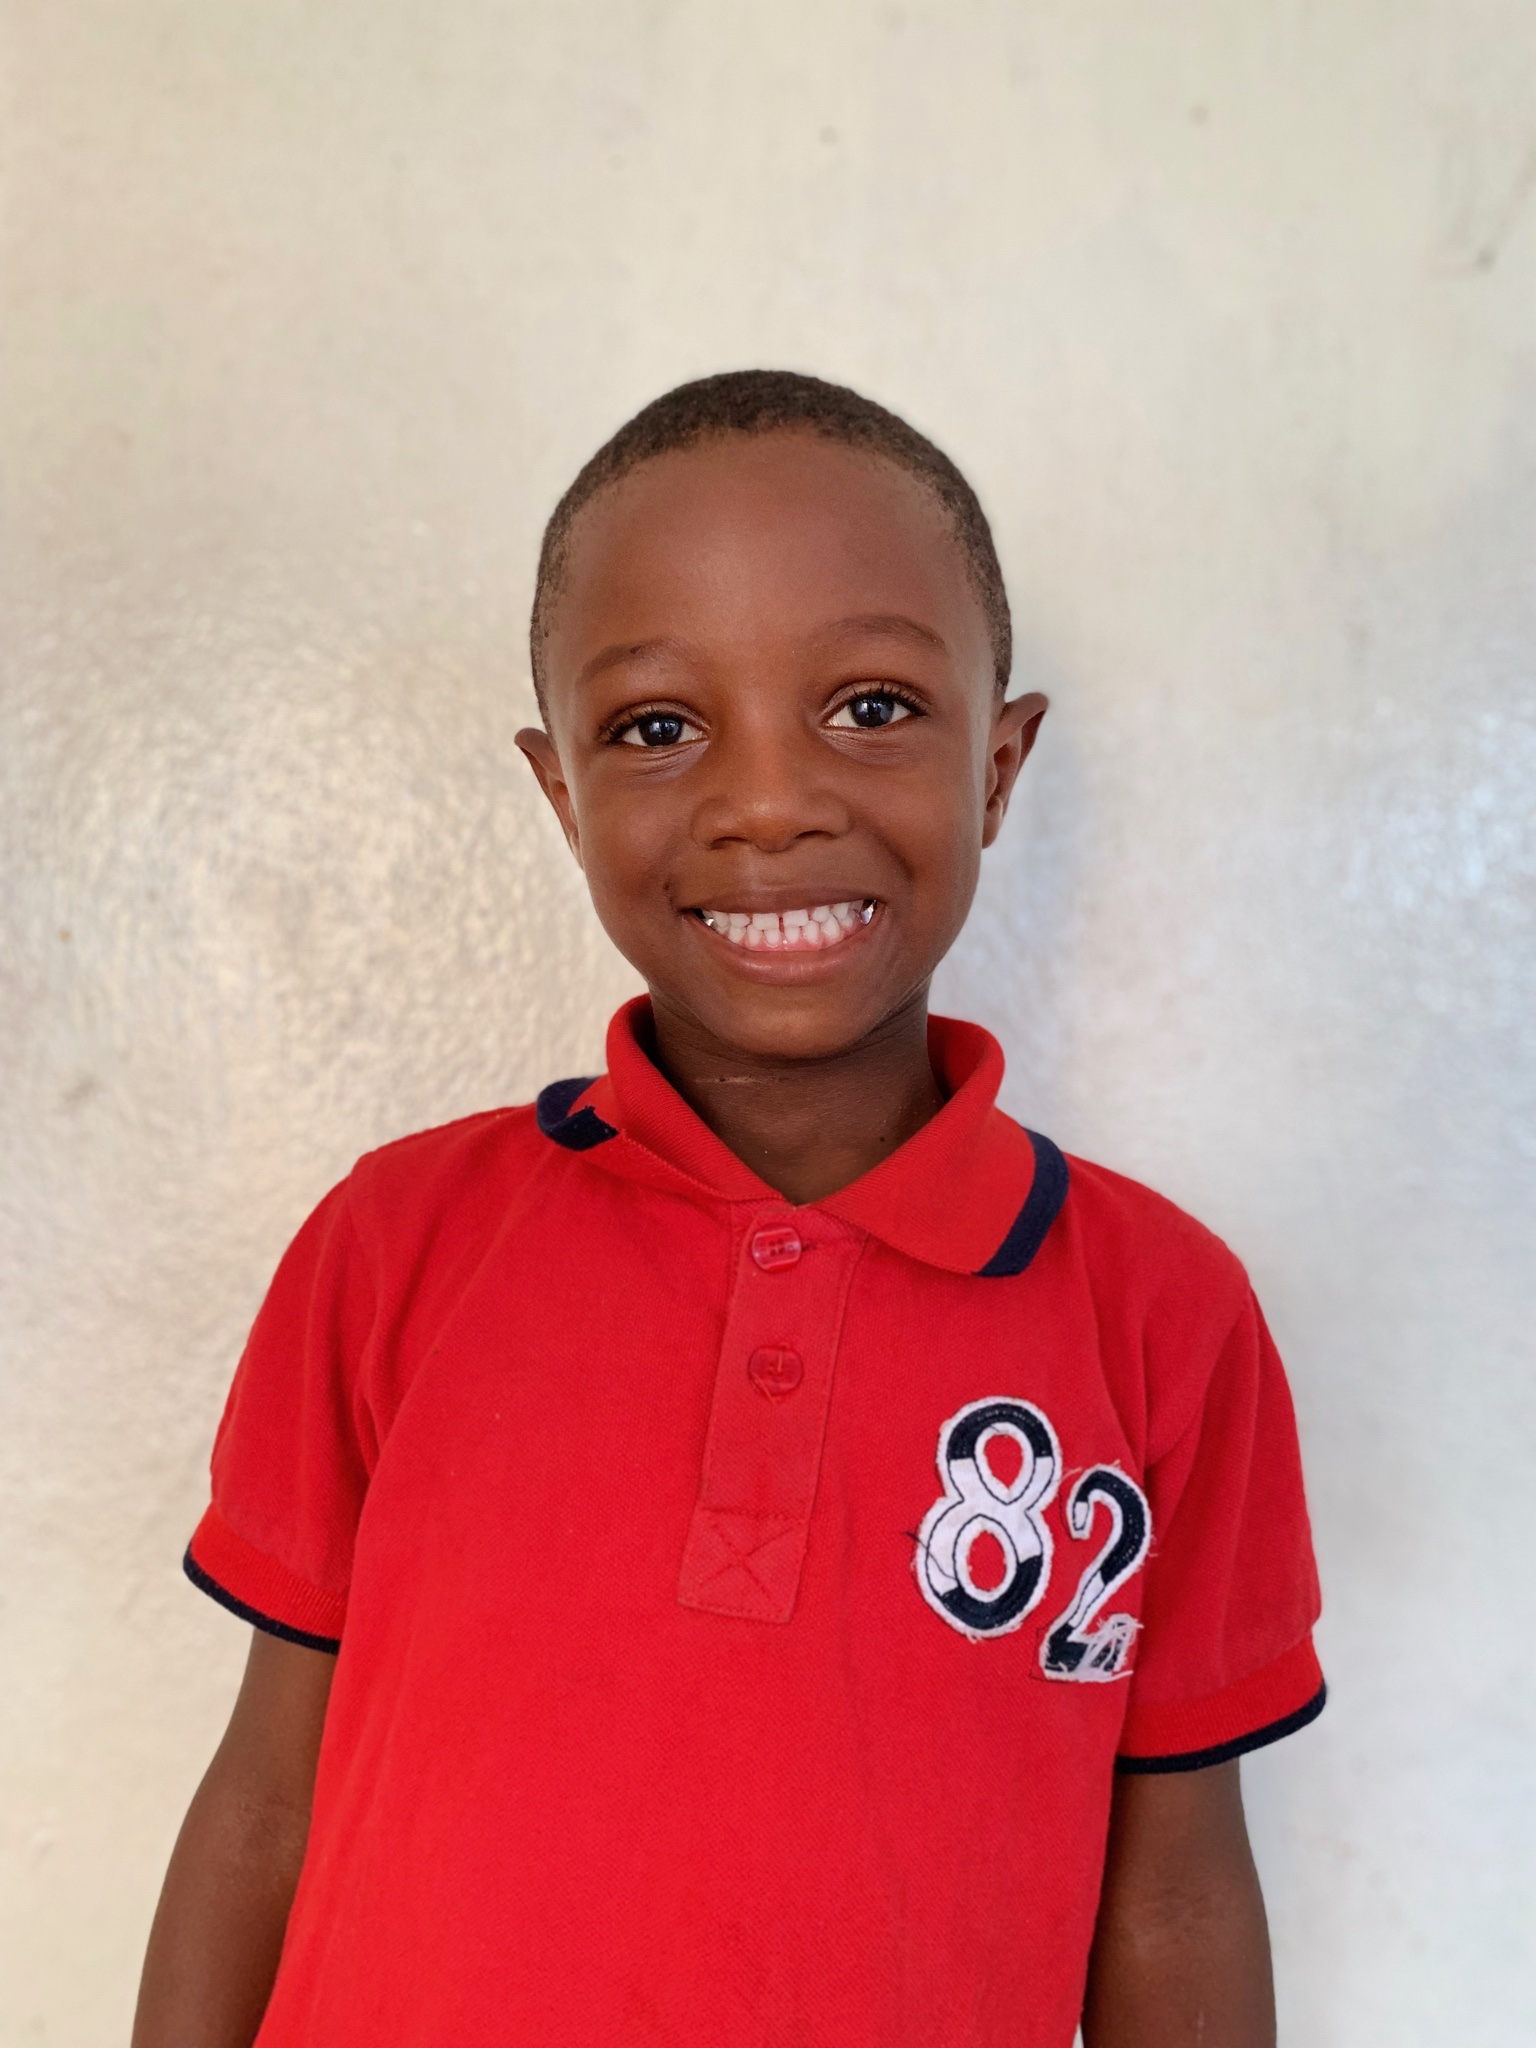 Hello, my name is Daniel Gardeah. - Daniel is a 5-year-old boy.Daniel lives with his parents, two brothers, and a sister; and loves cats, drawing, and the color green.